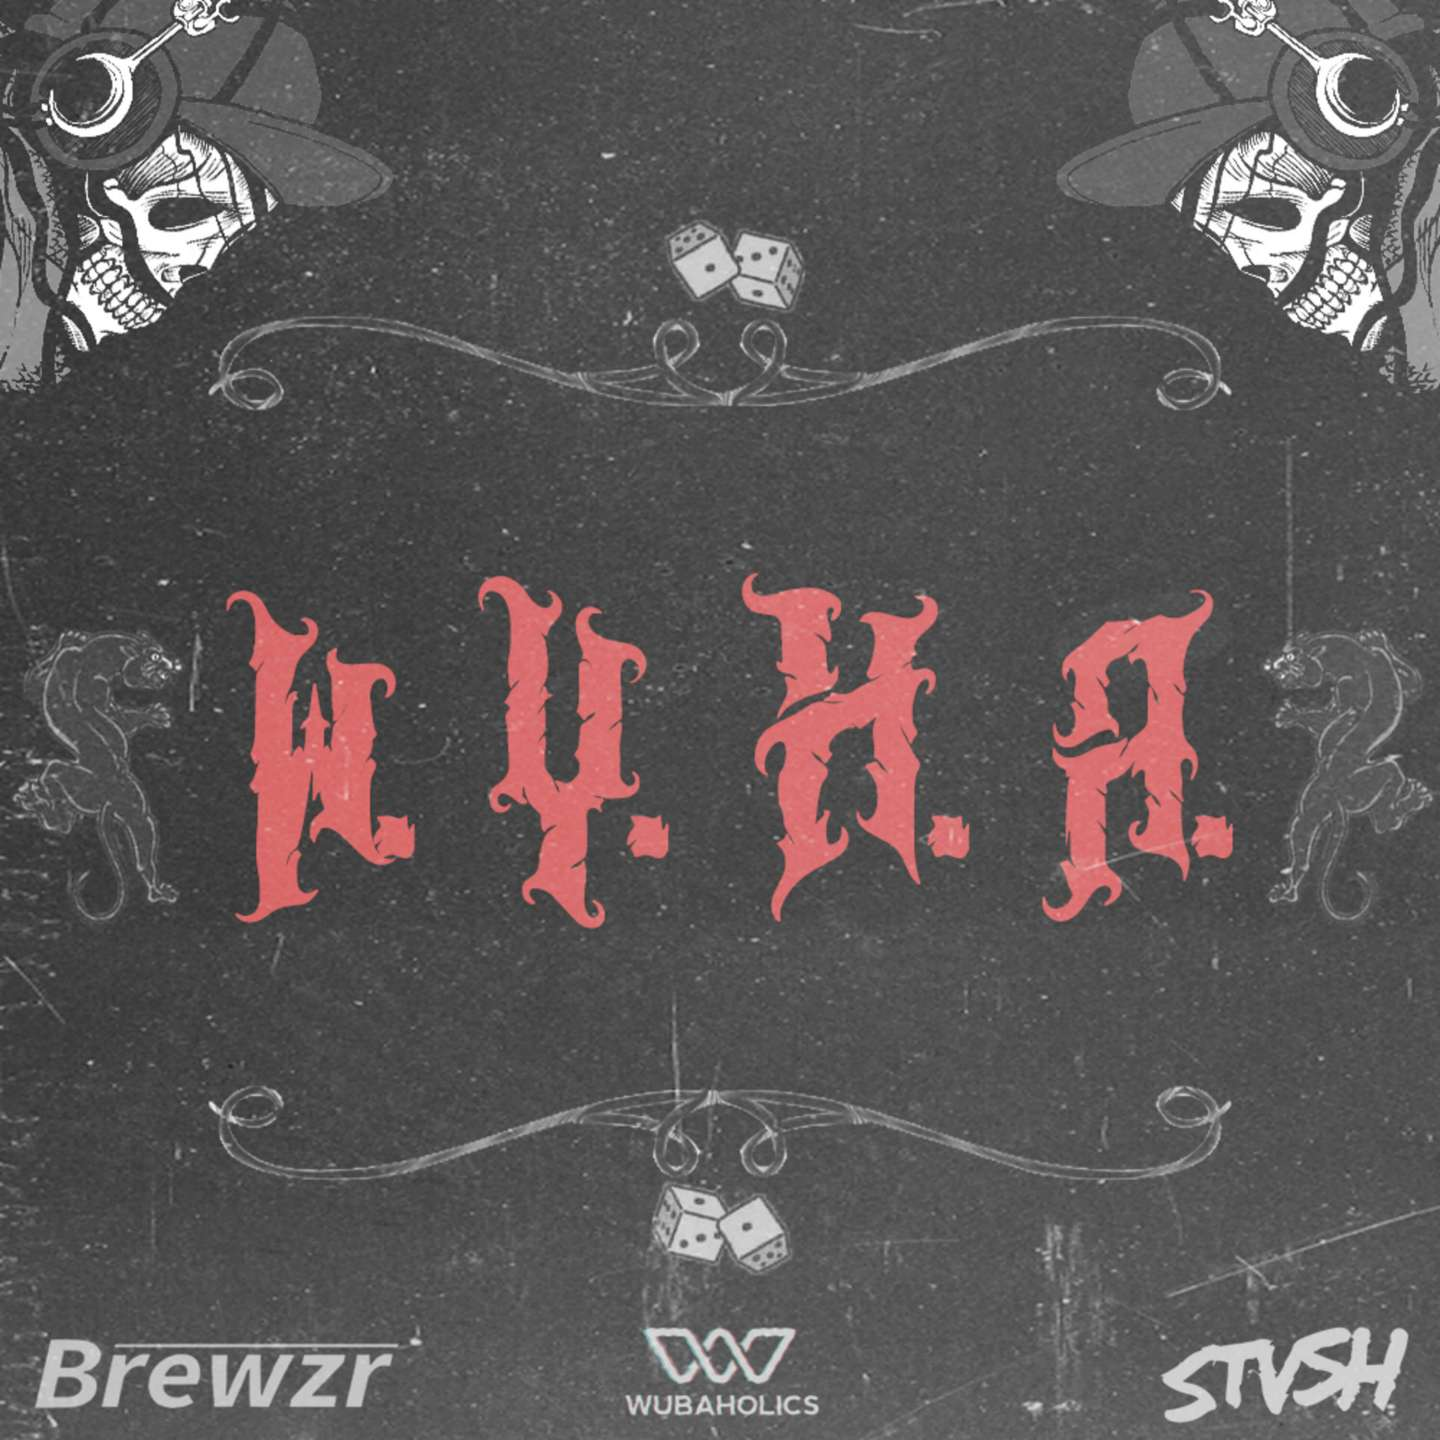 W.Y.H.A. STVSH BREWZR electric hawk